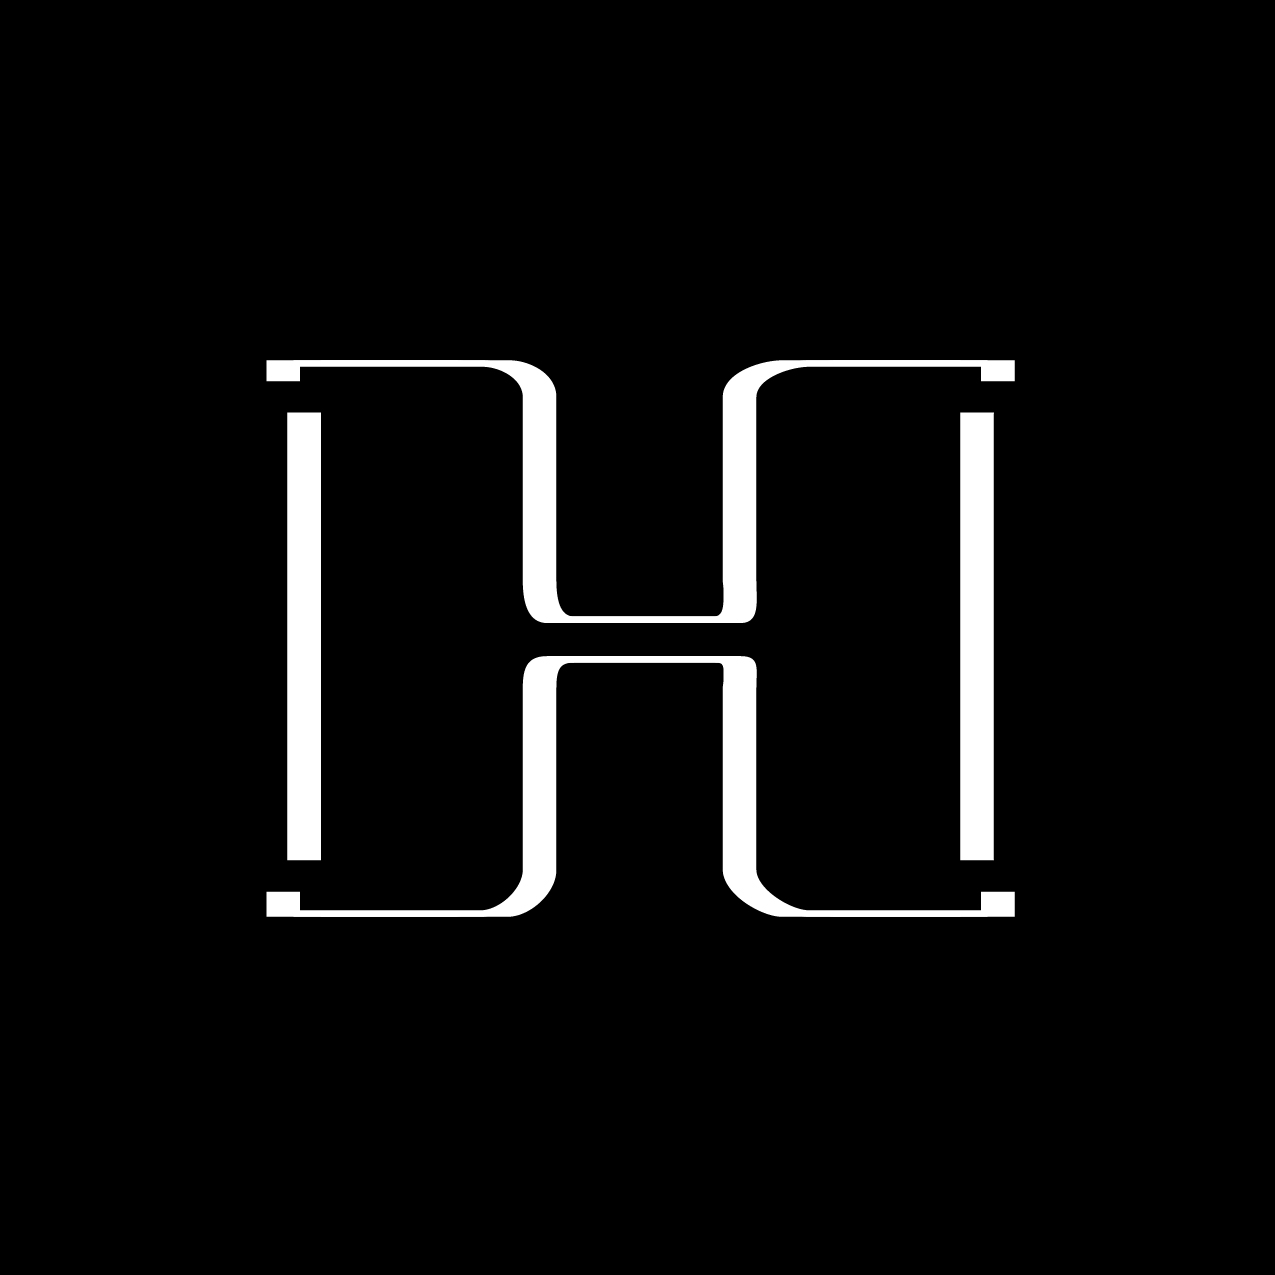 Letter H14 Design by Furia